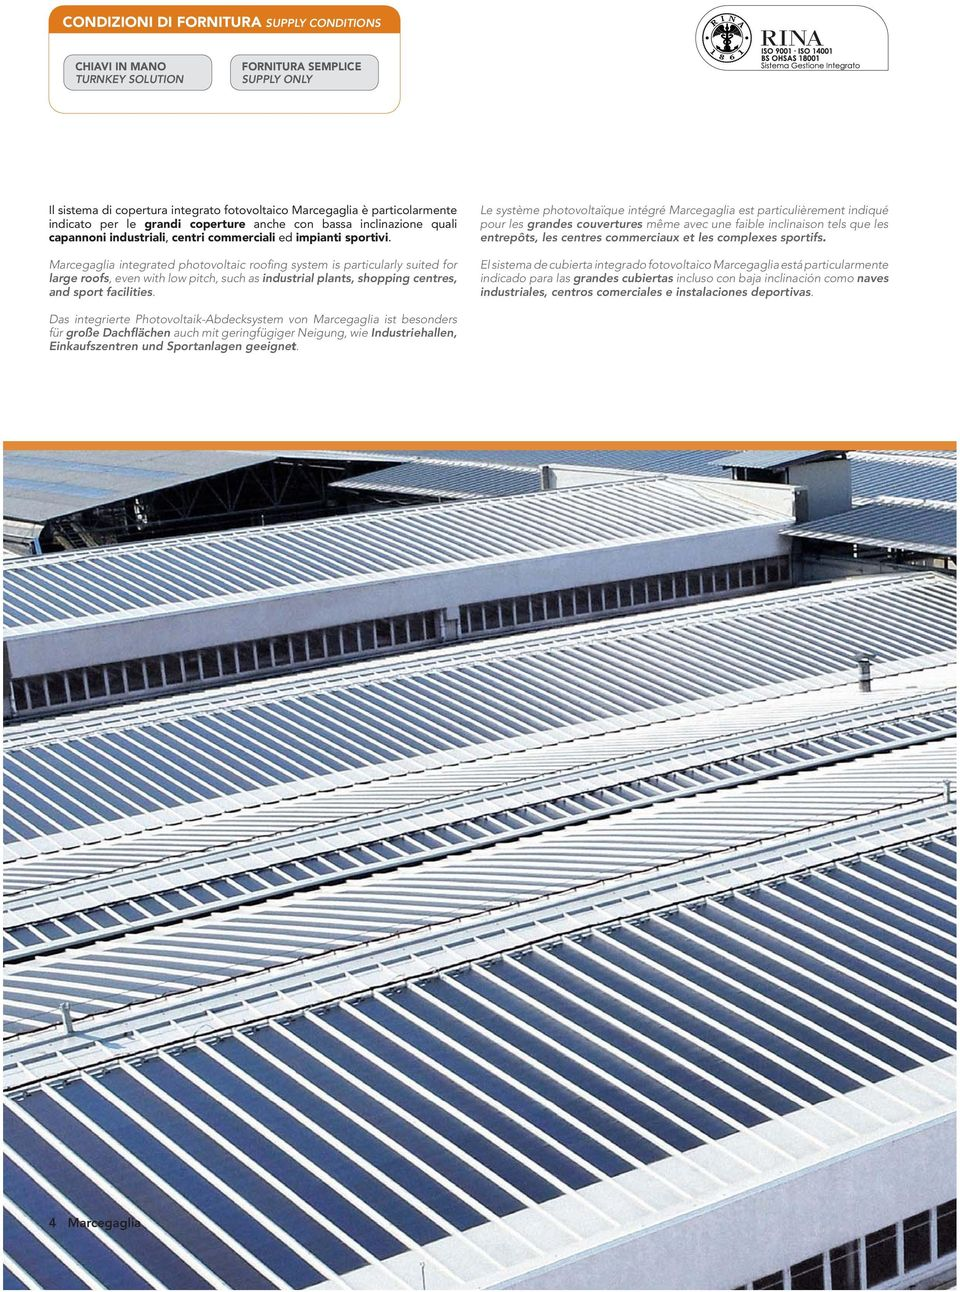 Marcegaglia integrated photovoltaic roofing system is particularly suited for large roofs, even with low pitch, such as industrial plants, shopping centres, and sport facilities.